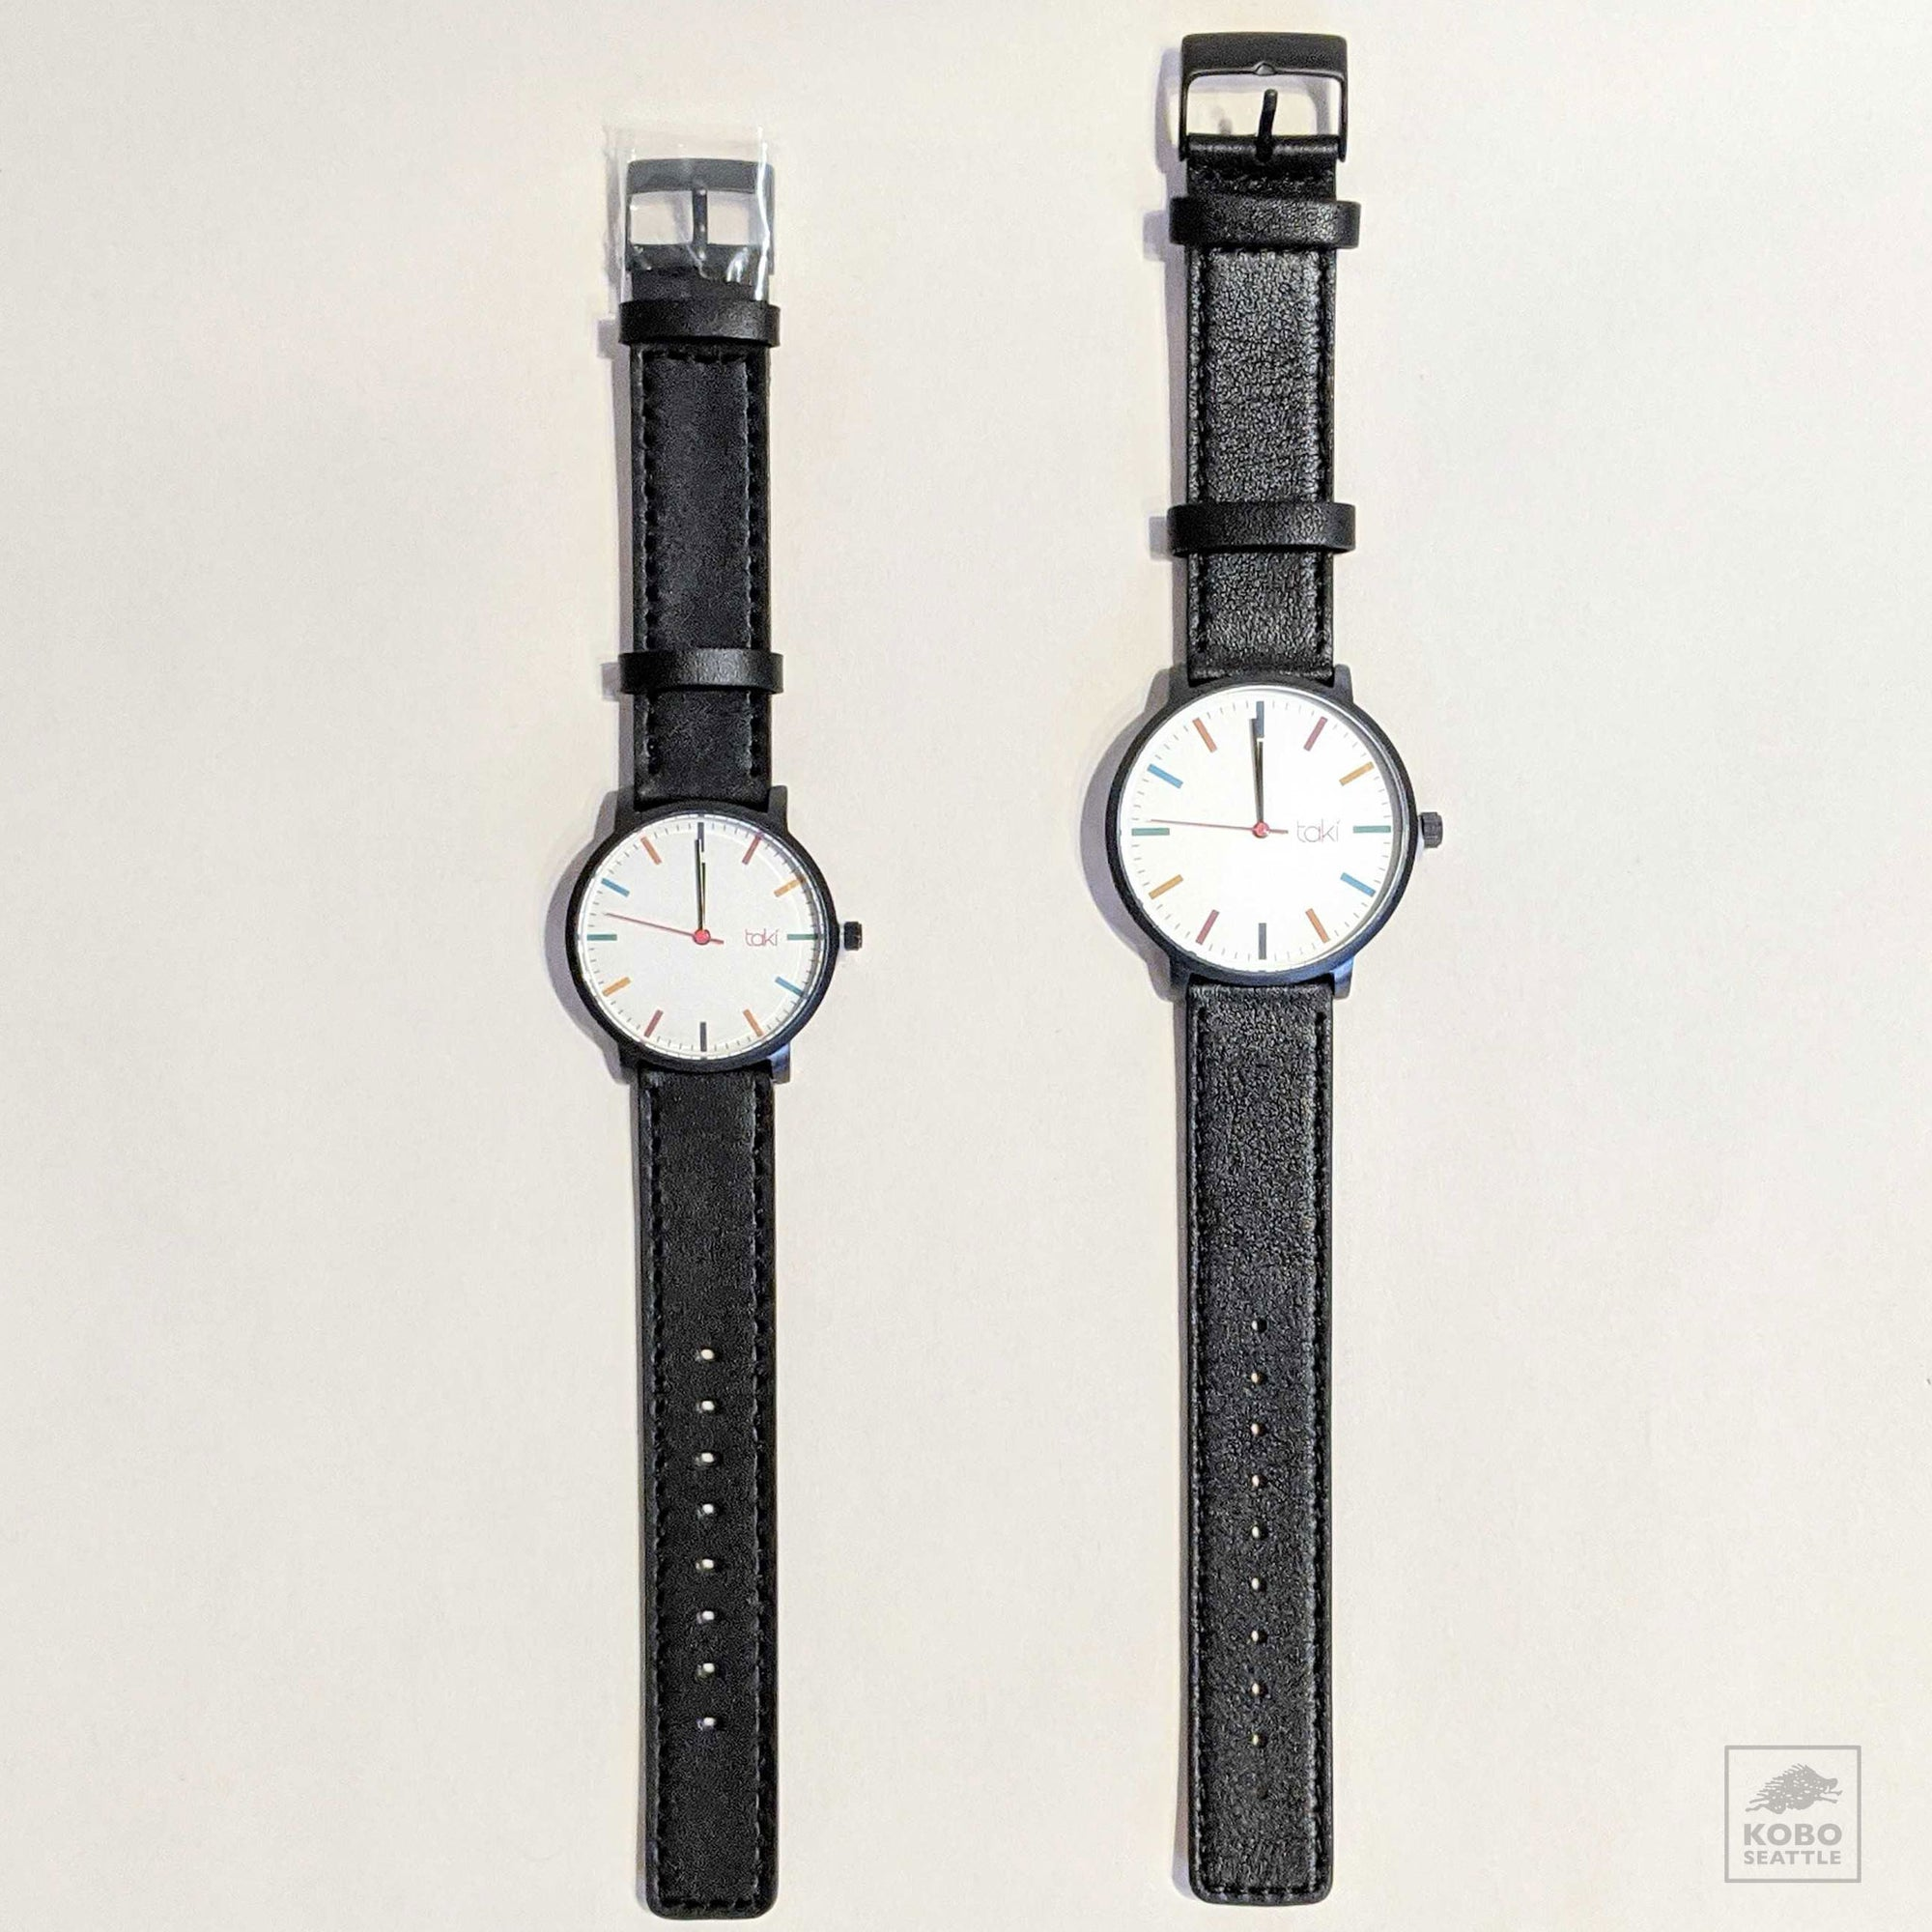 Taki Wrist Watch - Black/White - two case sizes